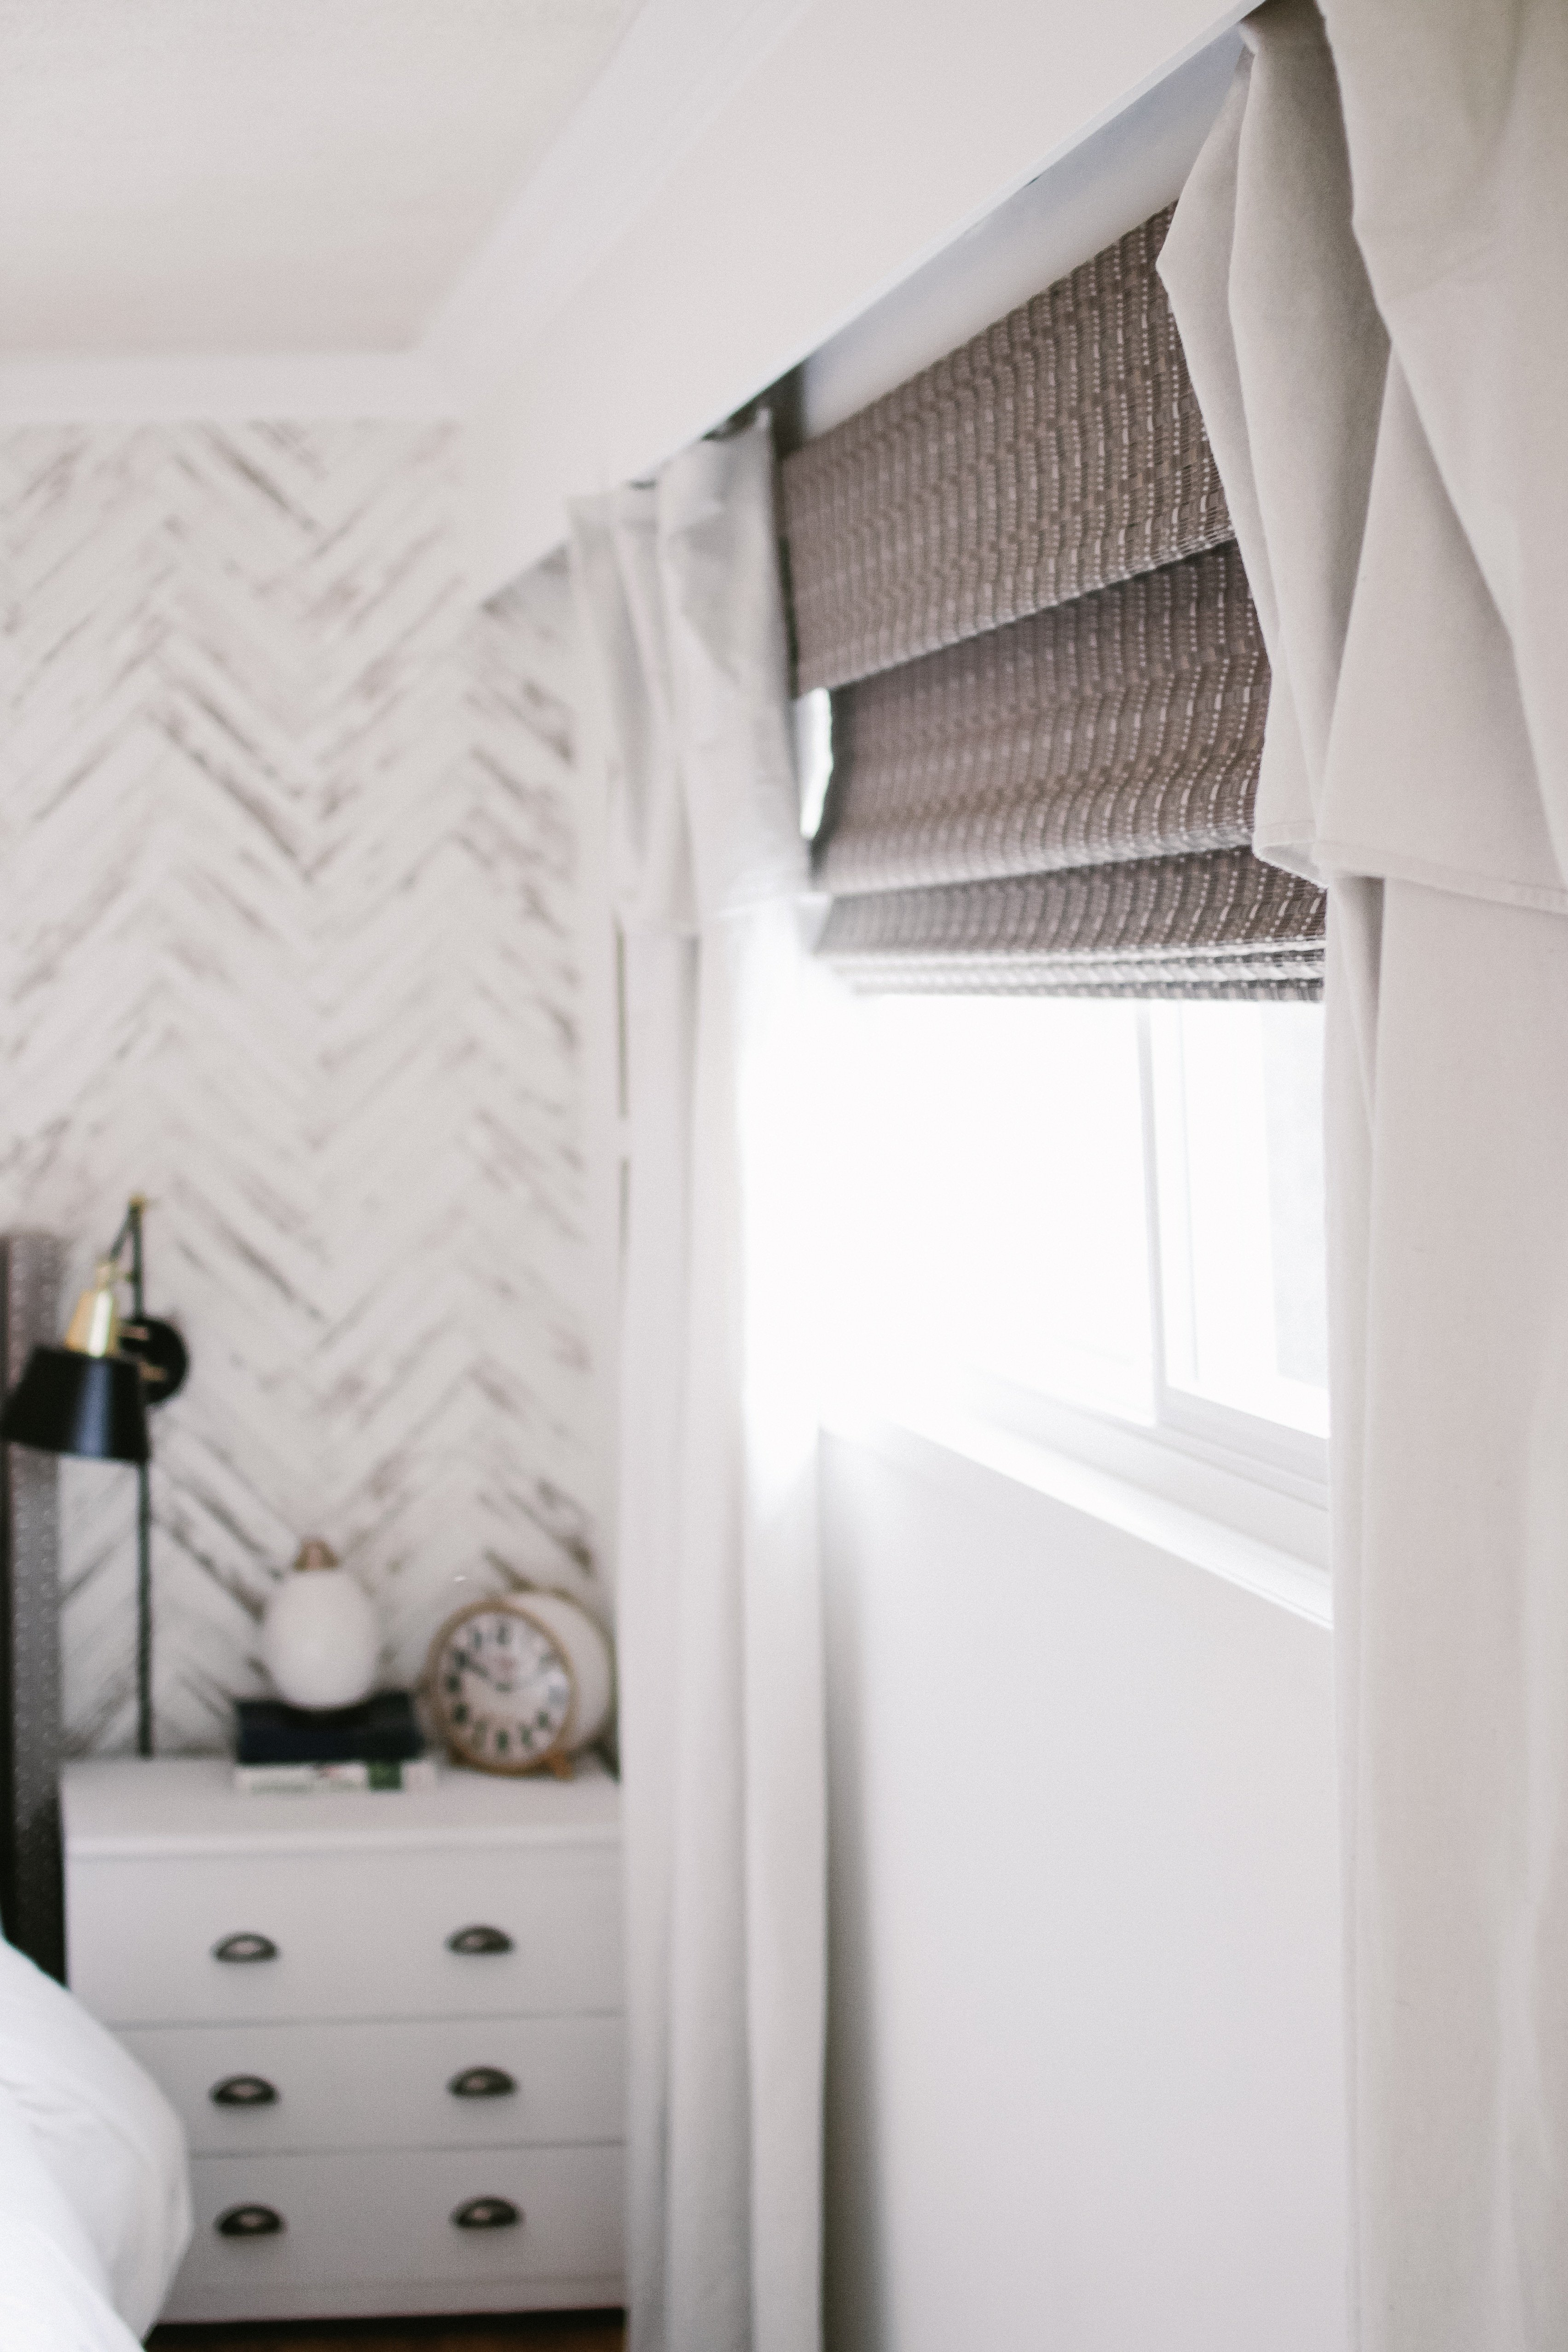 Our Cozy Modern Farmhouse Bedroom. How we decorated our old dingy 70's bedroom on a budget